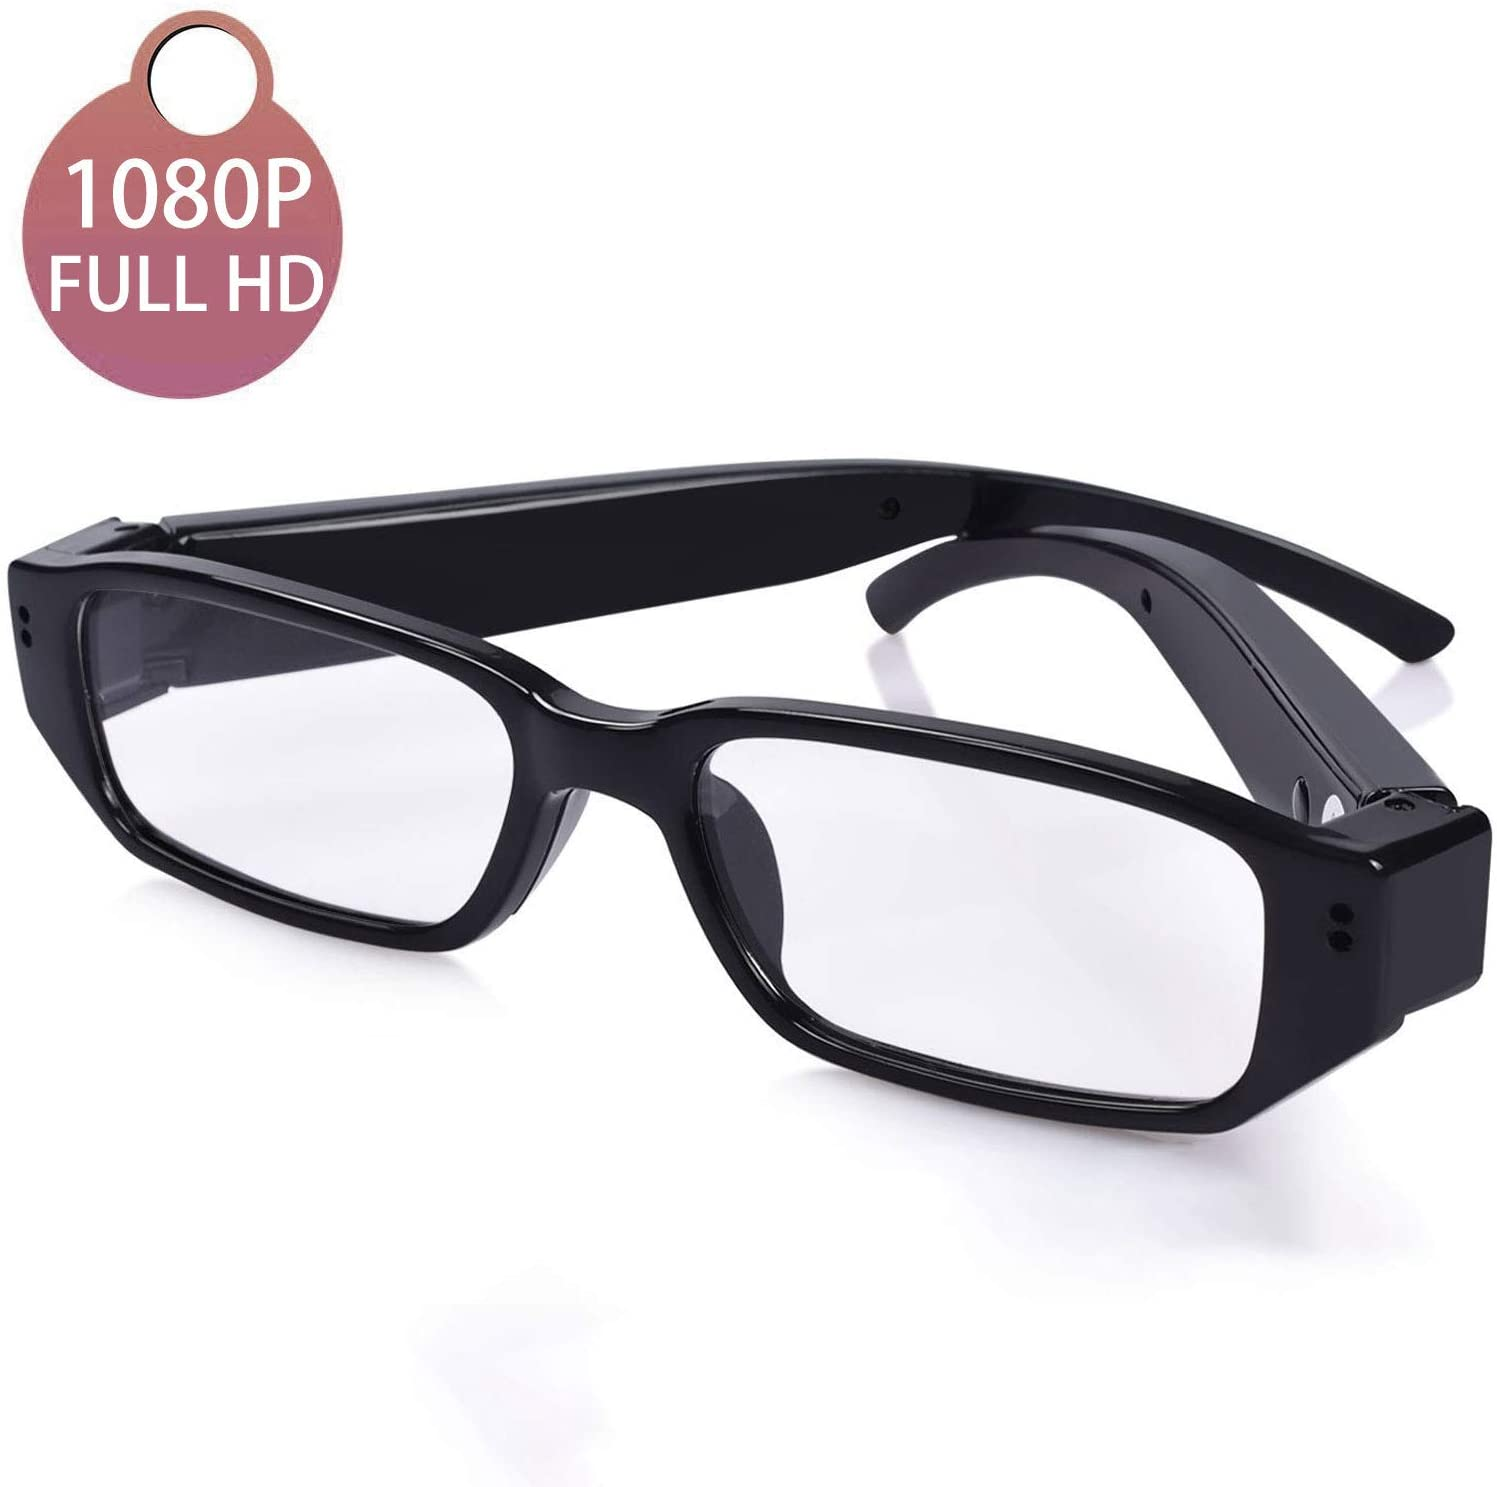 5. [Upgraded] Sukia 1080P Full HD Spy Camera Glasses